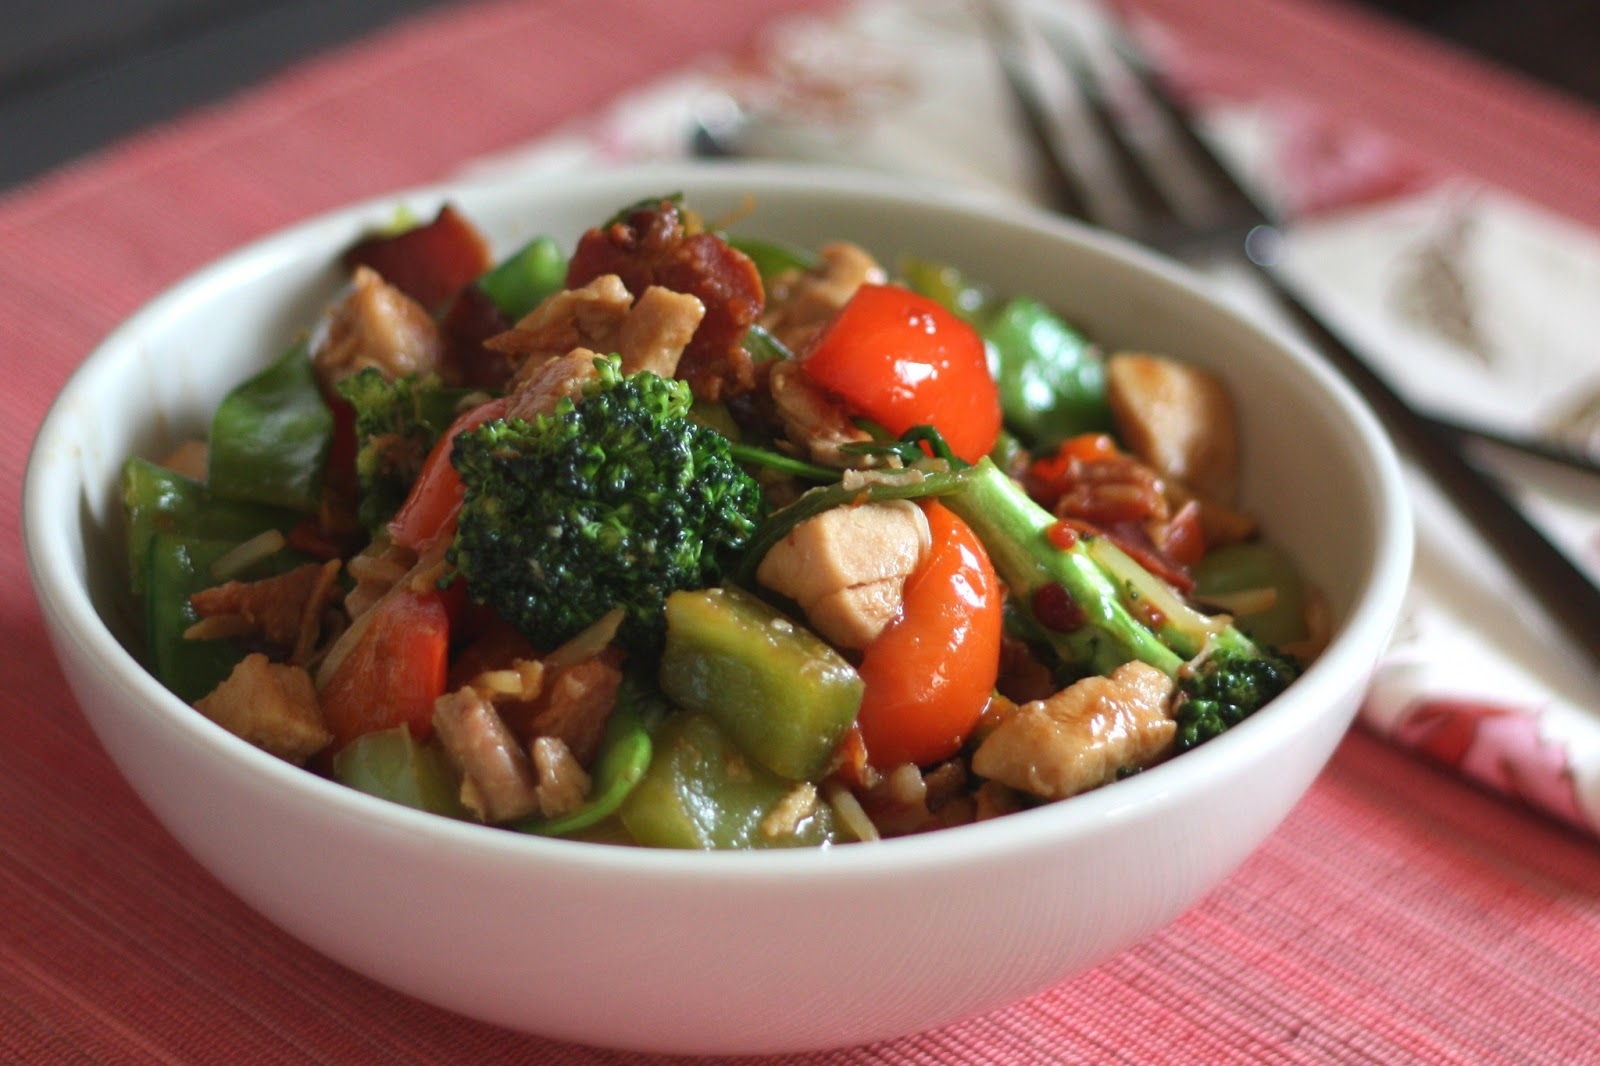 ... sprouts and green onions are quickly stir fried with chicken and bacon